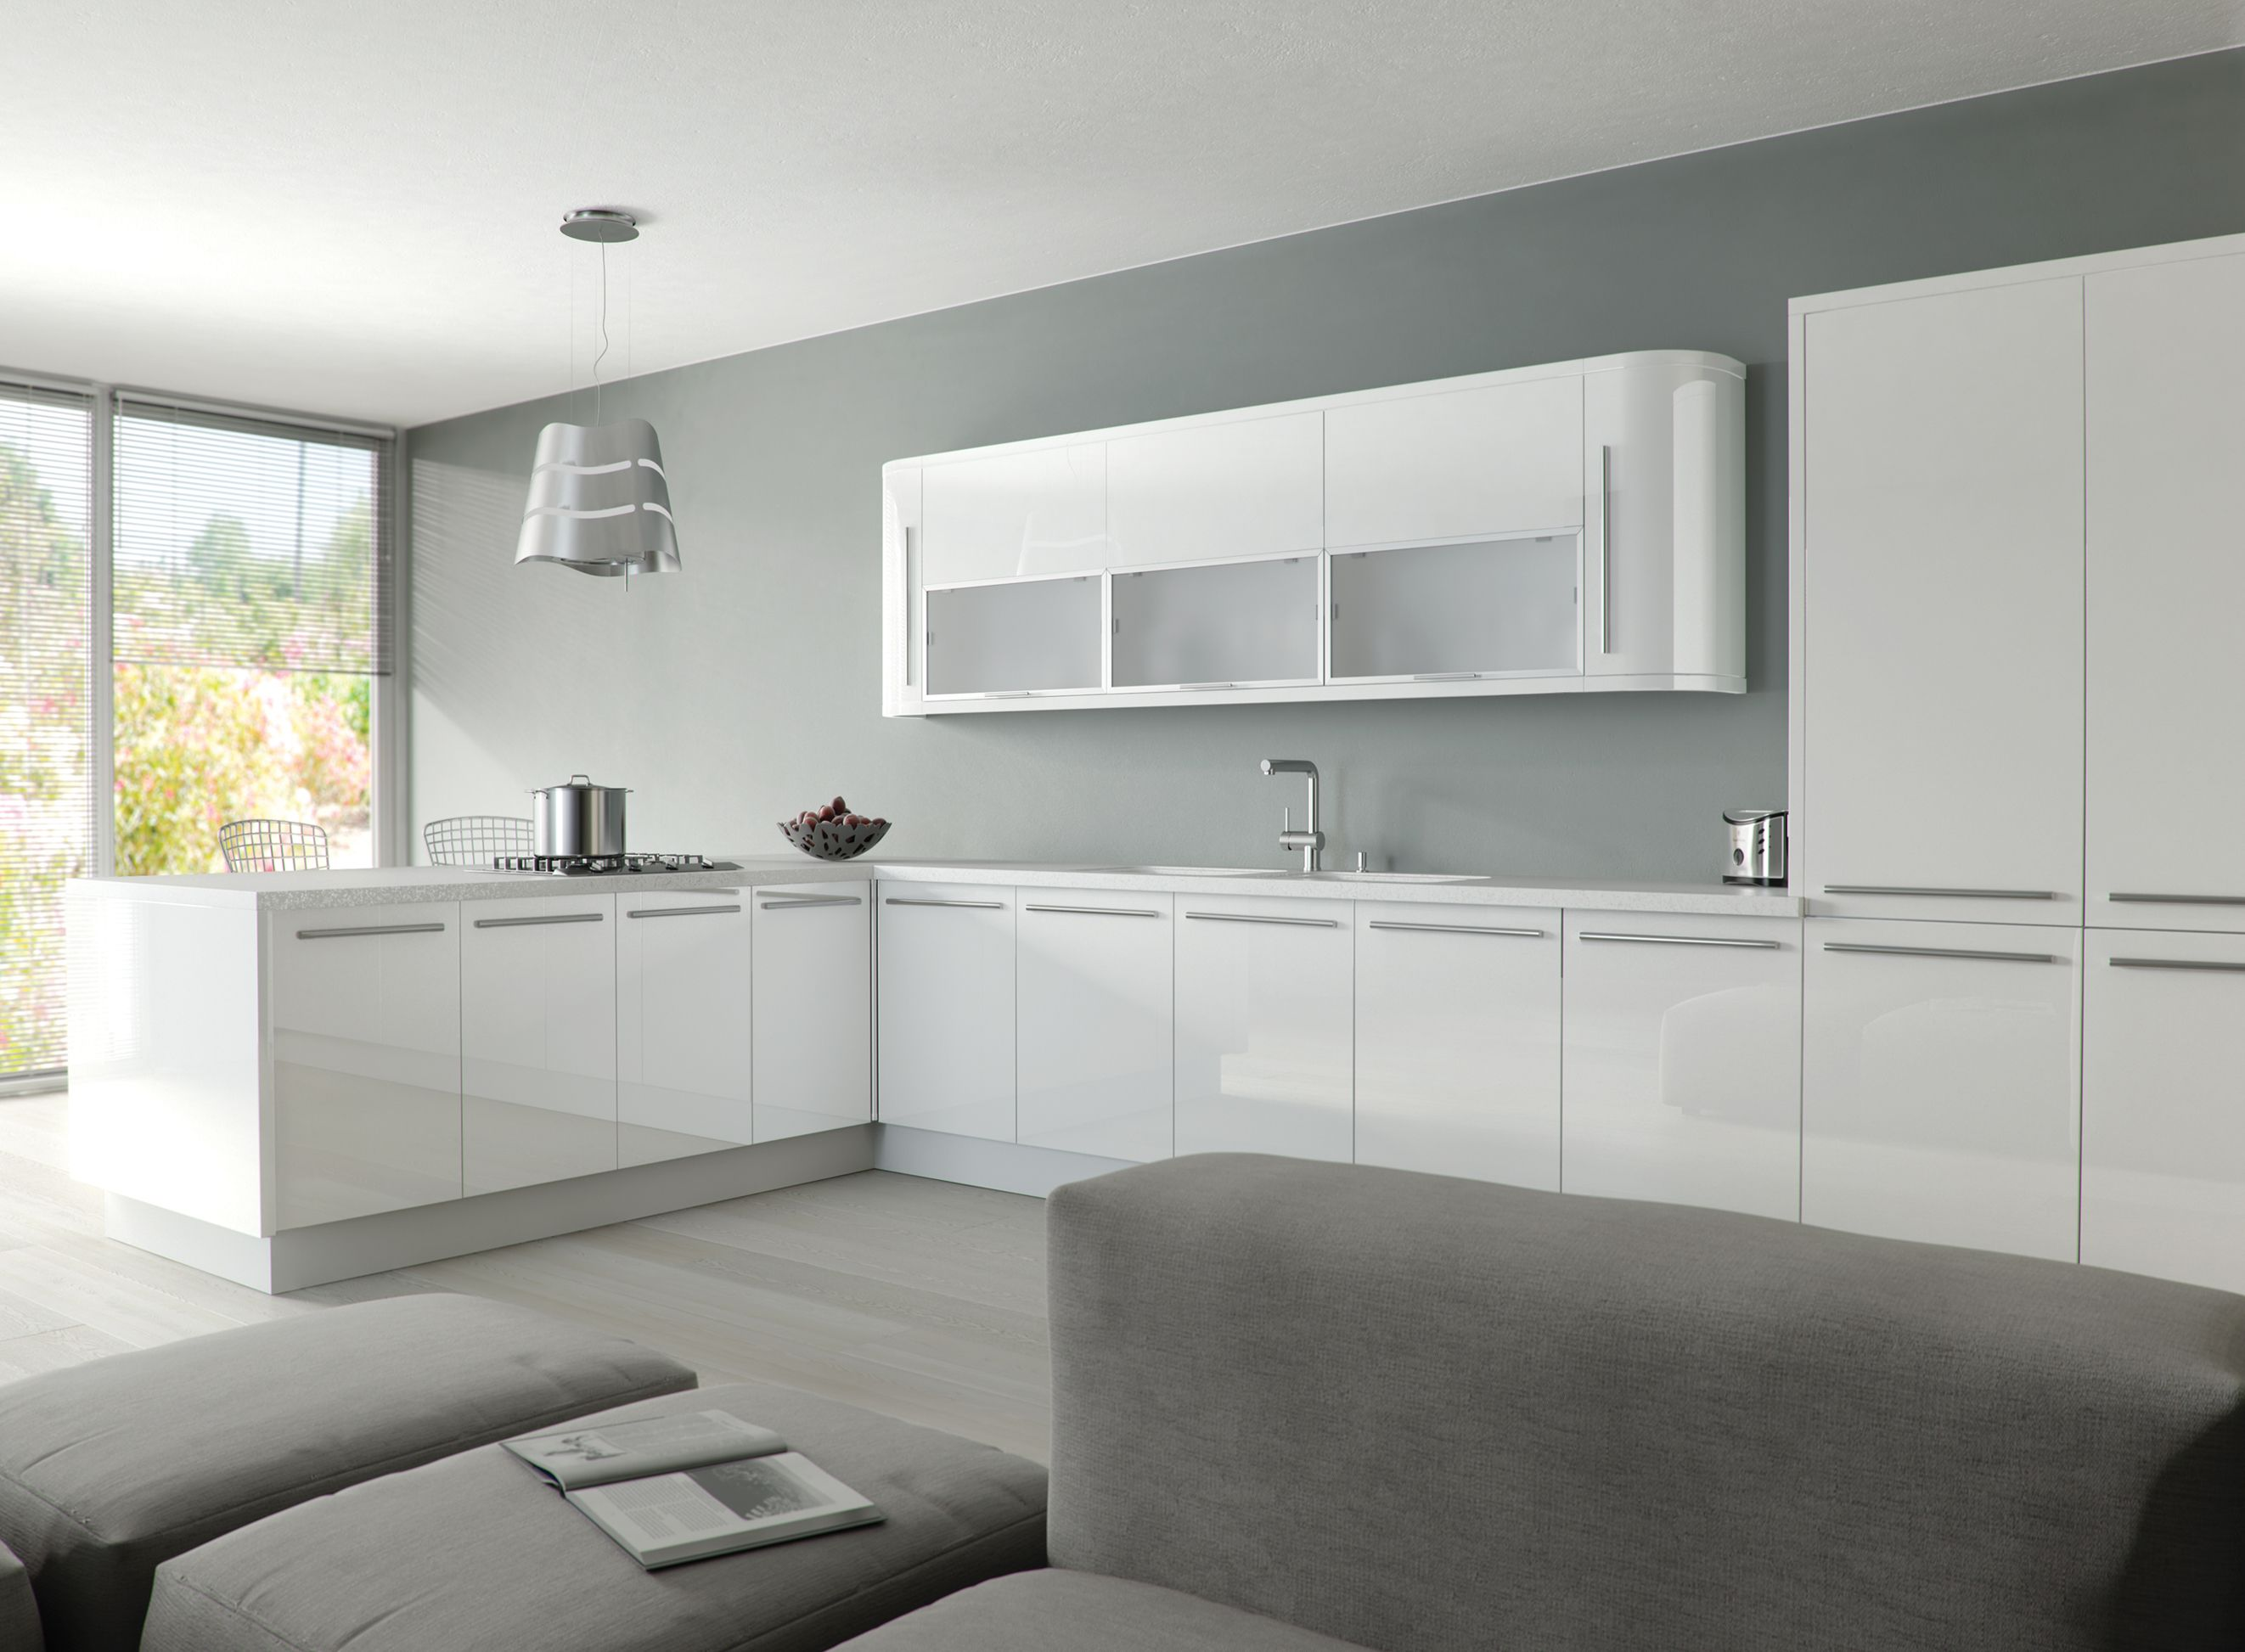 7 Things You Need To Know About White Gloss Acrylic Kitchen Cabinets Today In 2020 Glossy Kitchen Gloss Kitchen Cabinets White Gloss Kitchen